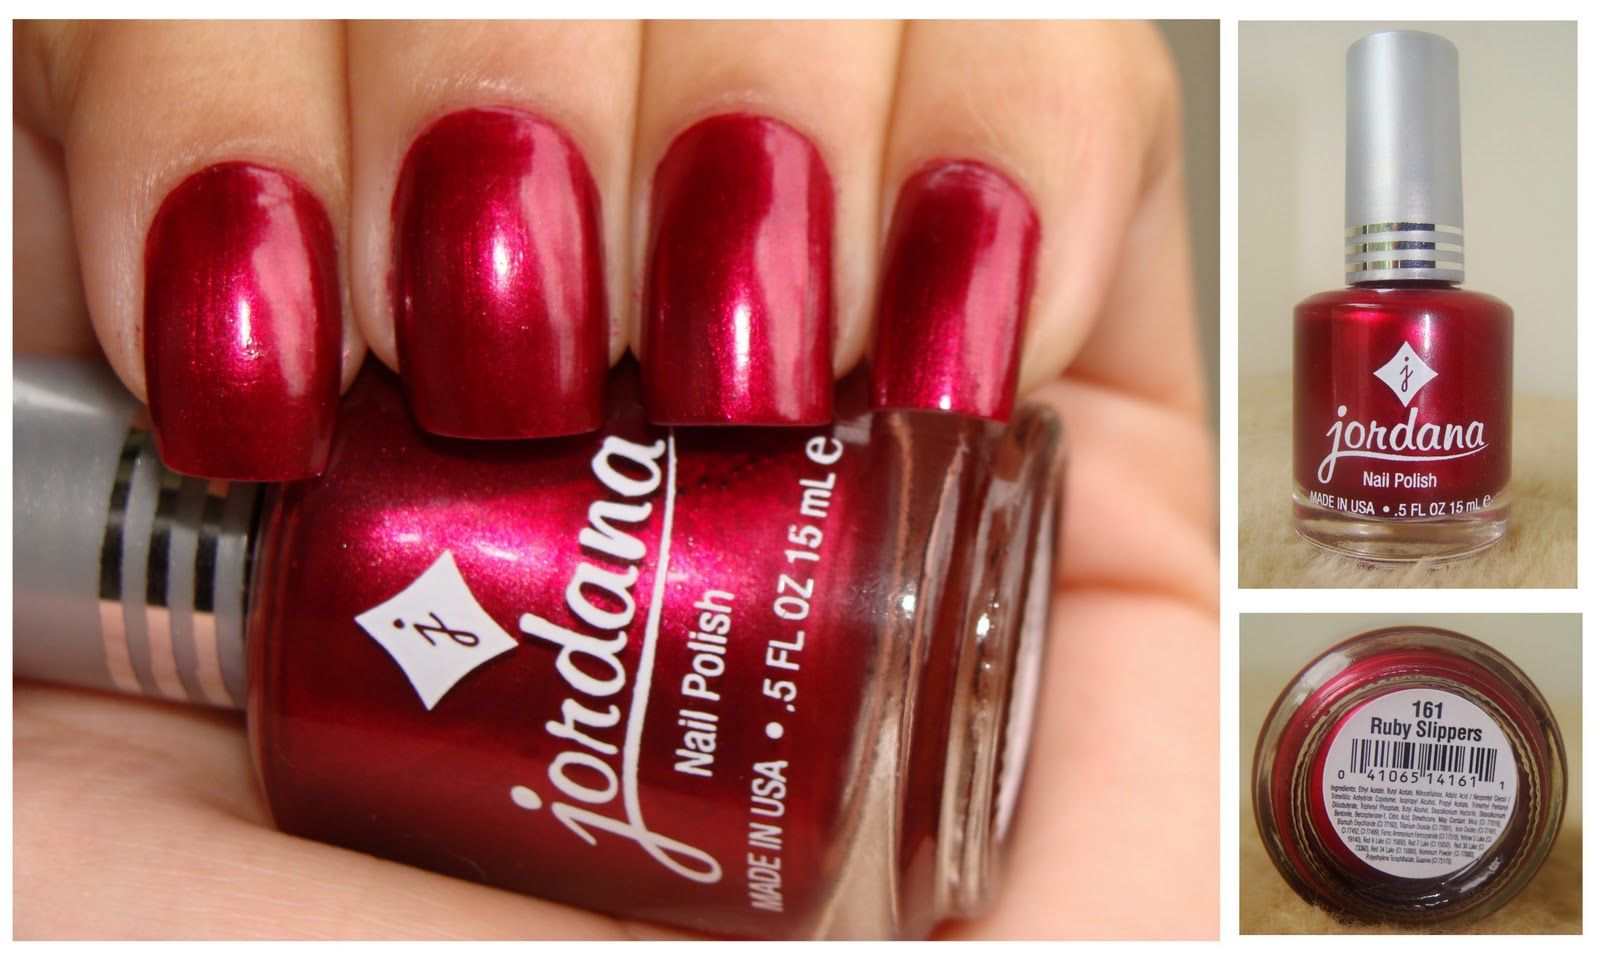 Ruby Slippers - Jordana Nail Polish | My blog posts | Pinterest ...